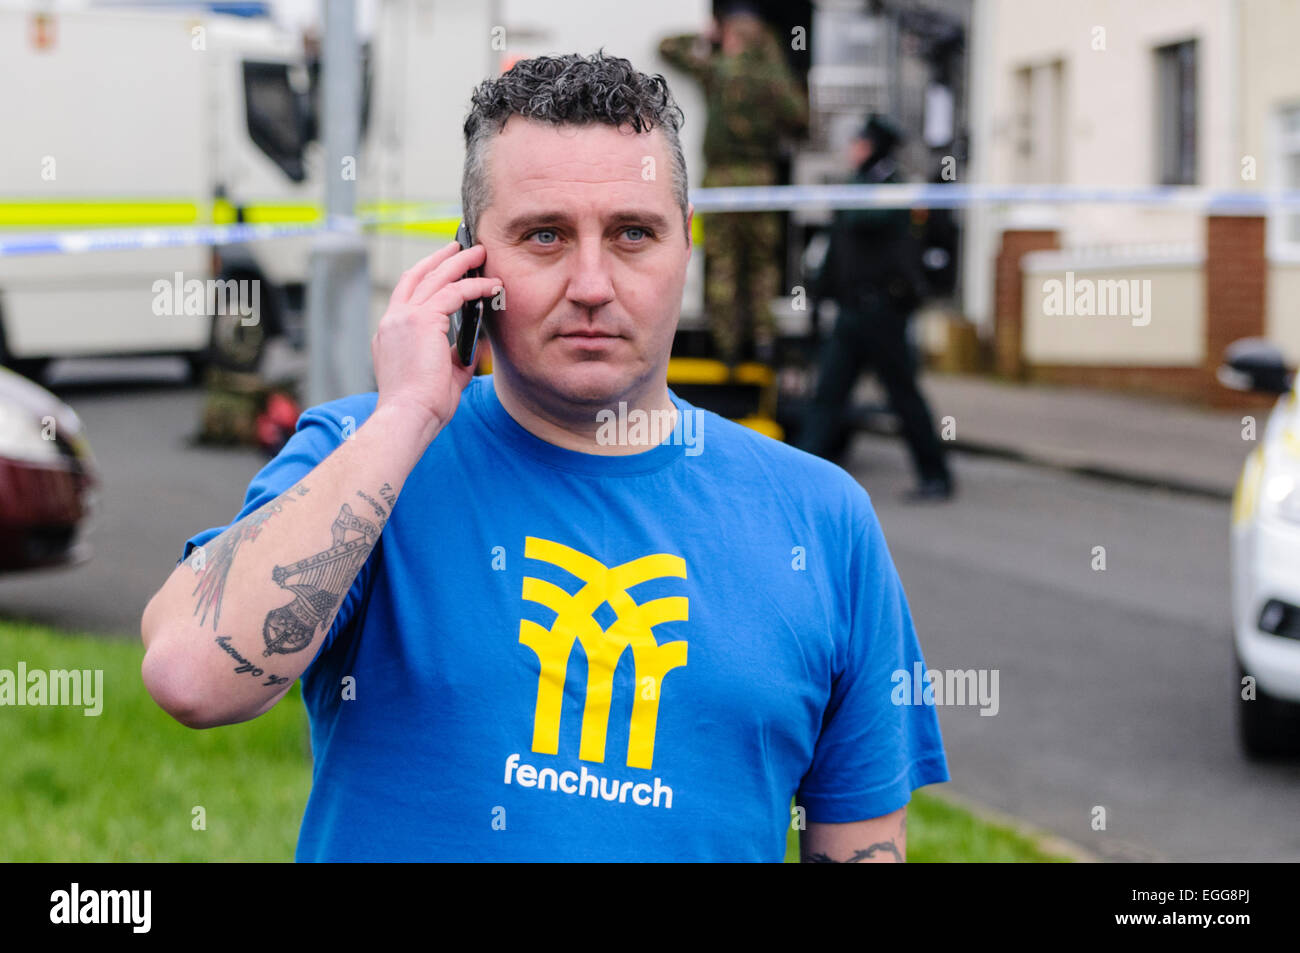 Newtownabbey councillor Phil Hamilton (PUP) targeted in pipe bomb attack, Rathcoole, NORTHERN IRELAND, UK 26/02/2012 - Stock Image